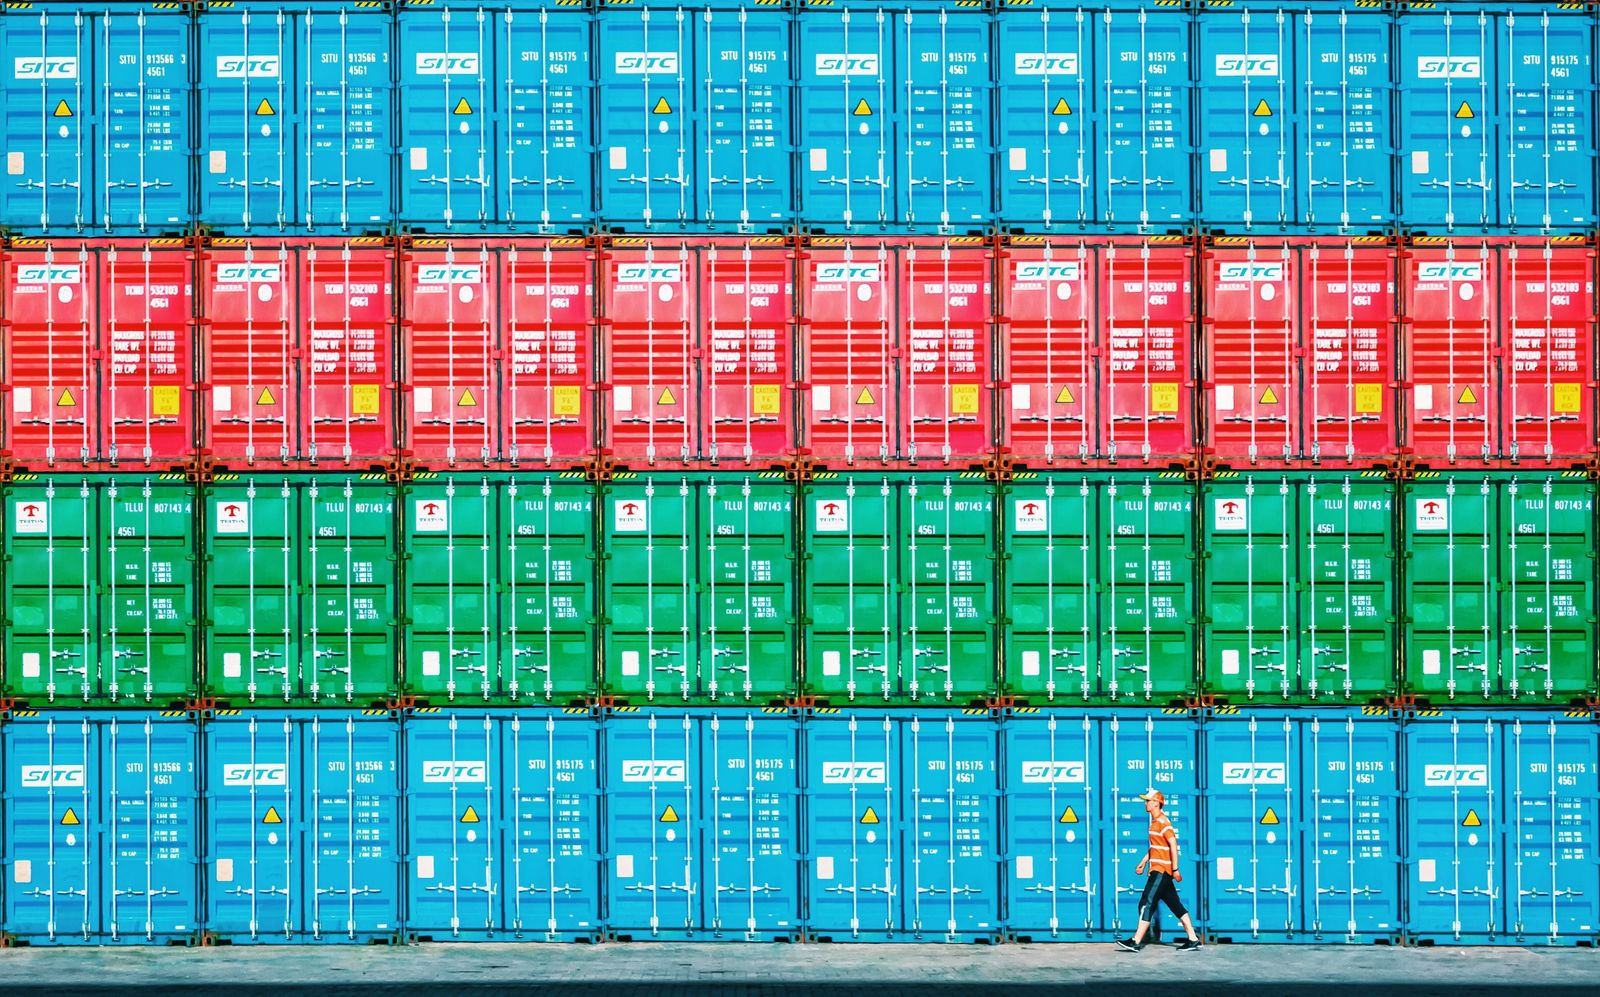 LIANYUNGANG, CHINA - AUGUST 09: A worker walks by piled-up containers at Port of Lianyungang on August 8, 2019 in Liany